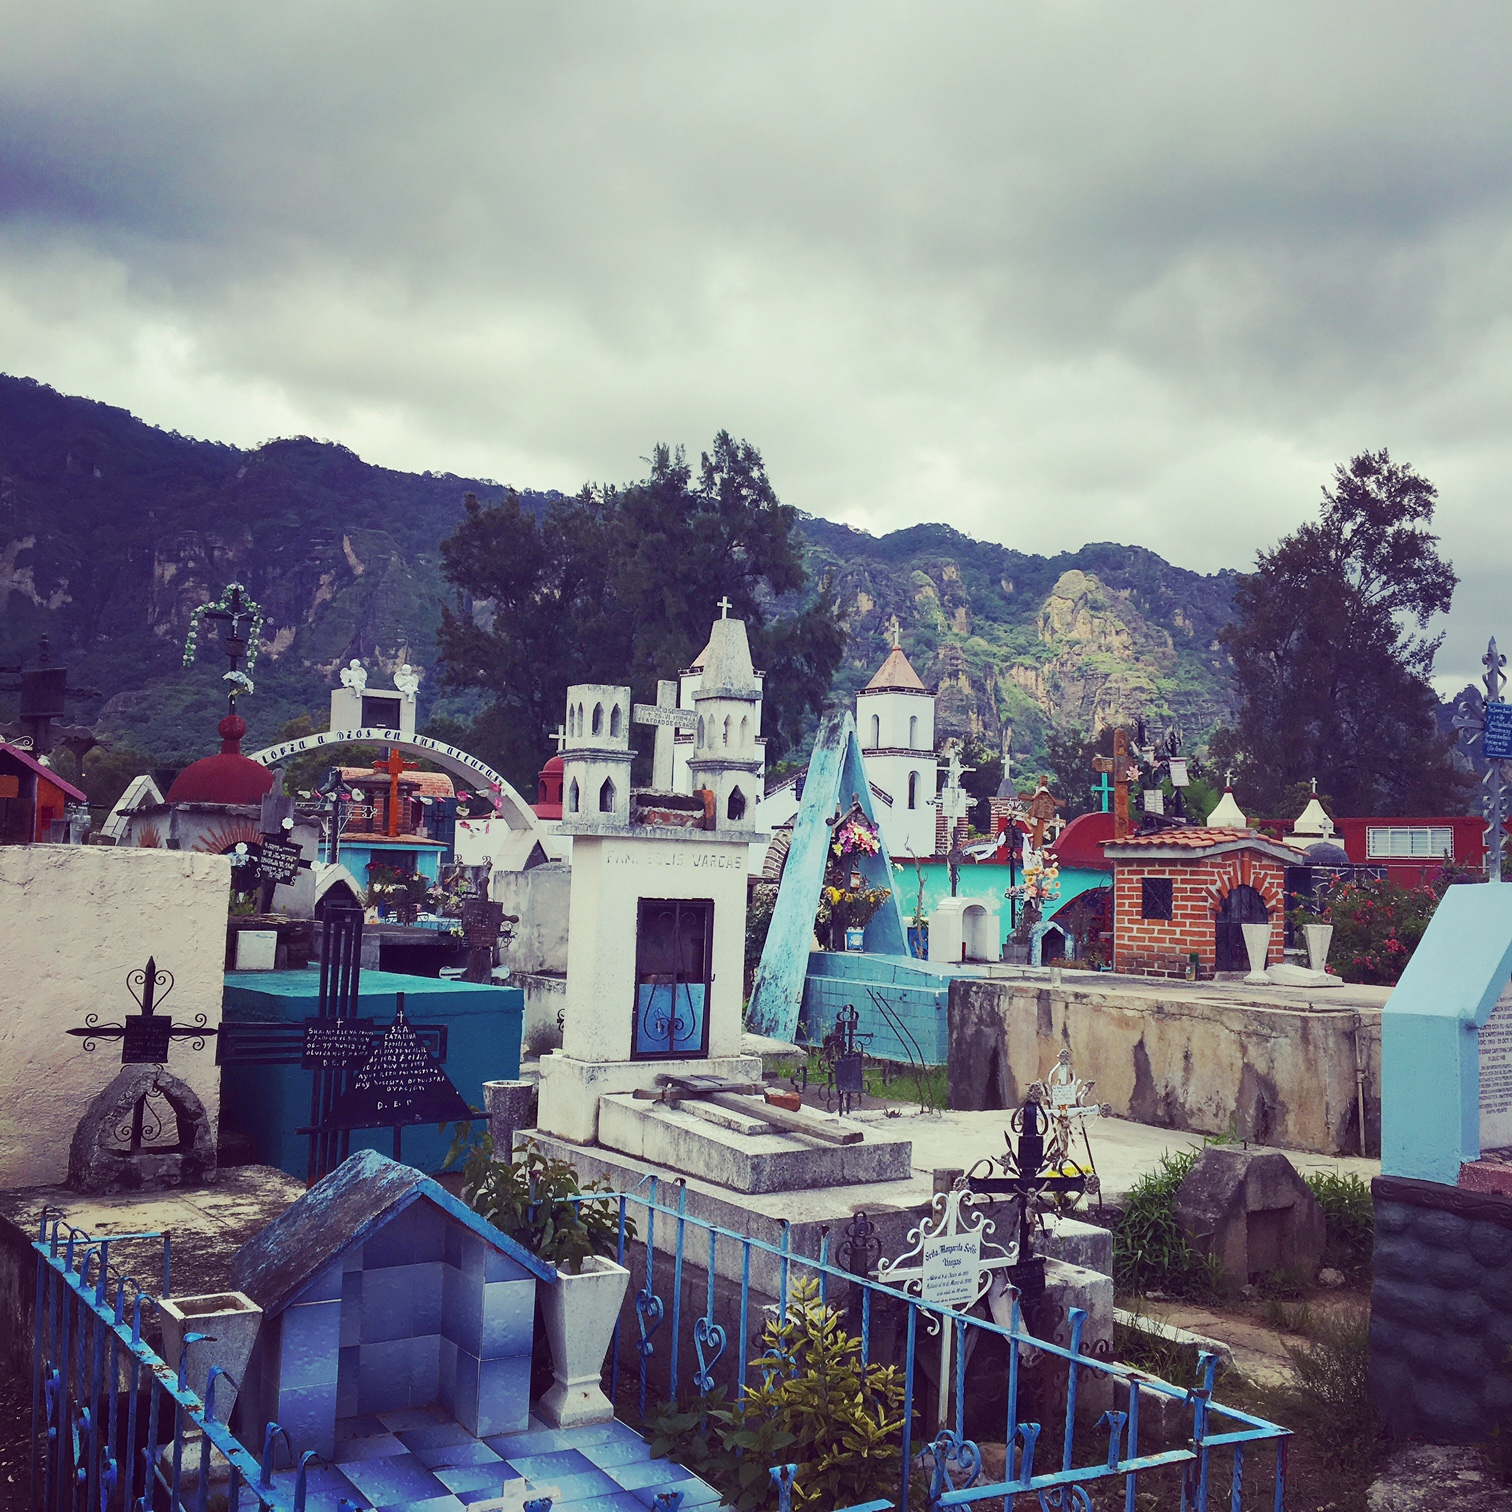 I was having such a good time that I decided I need to take even more of a retreat.  I ventured into the mountains to visit the magical town of Tepotzlan.